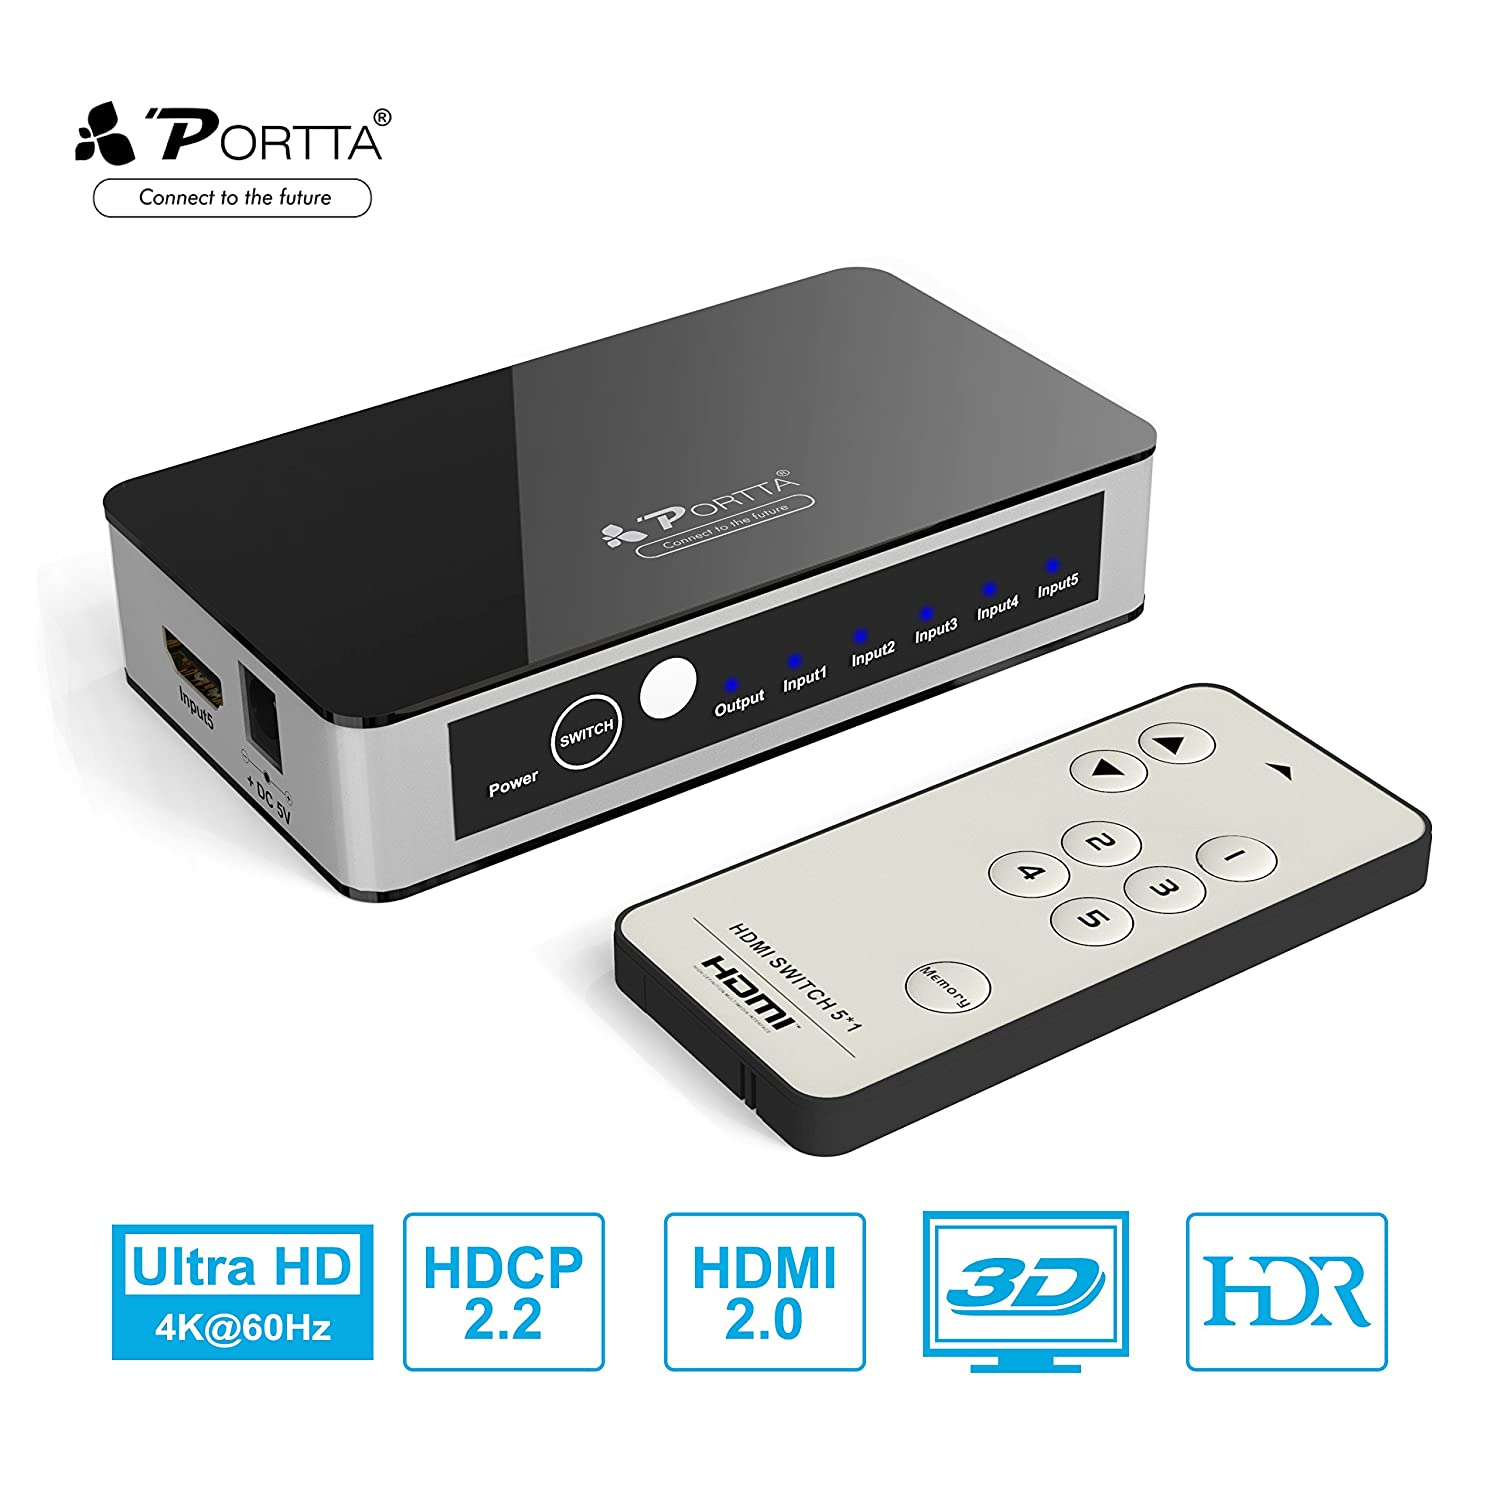 Portta HDMI Mini Switch/Switcher 5 Port 5x1 with IR Remote support 3D 1080p / 4K with Power Adapter POS41 N3SWT51